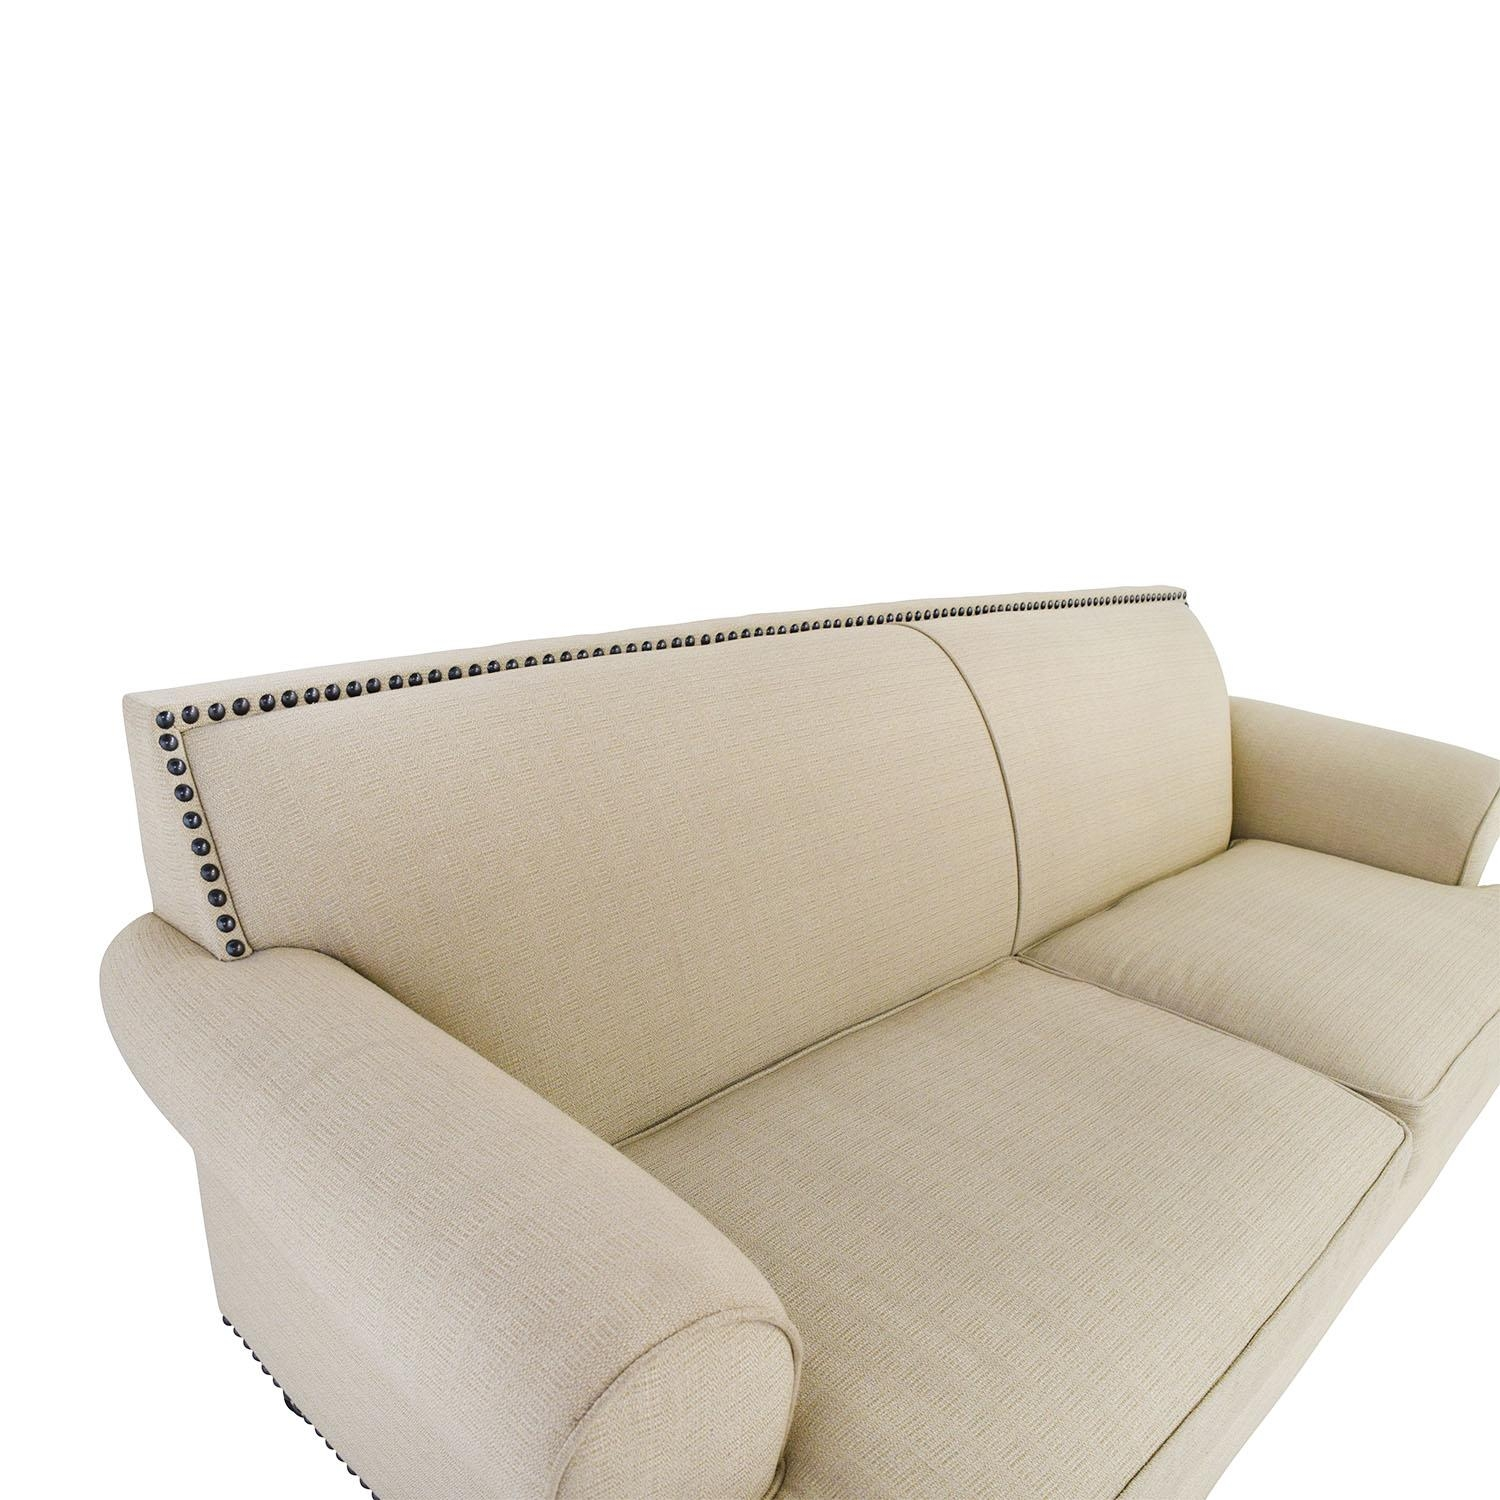 48% Off - Pier 1 Pier 1 Carmen Tan Couch With Studs / Sofas intended for Pier 1 Sofa Beds